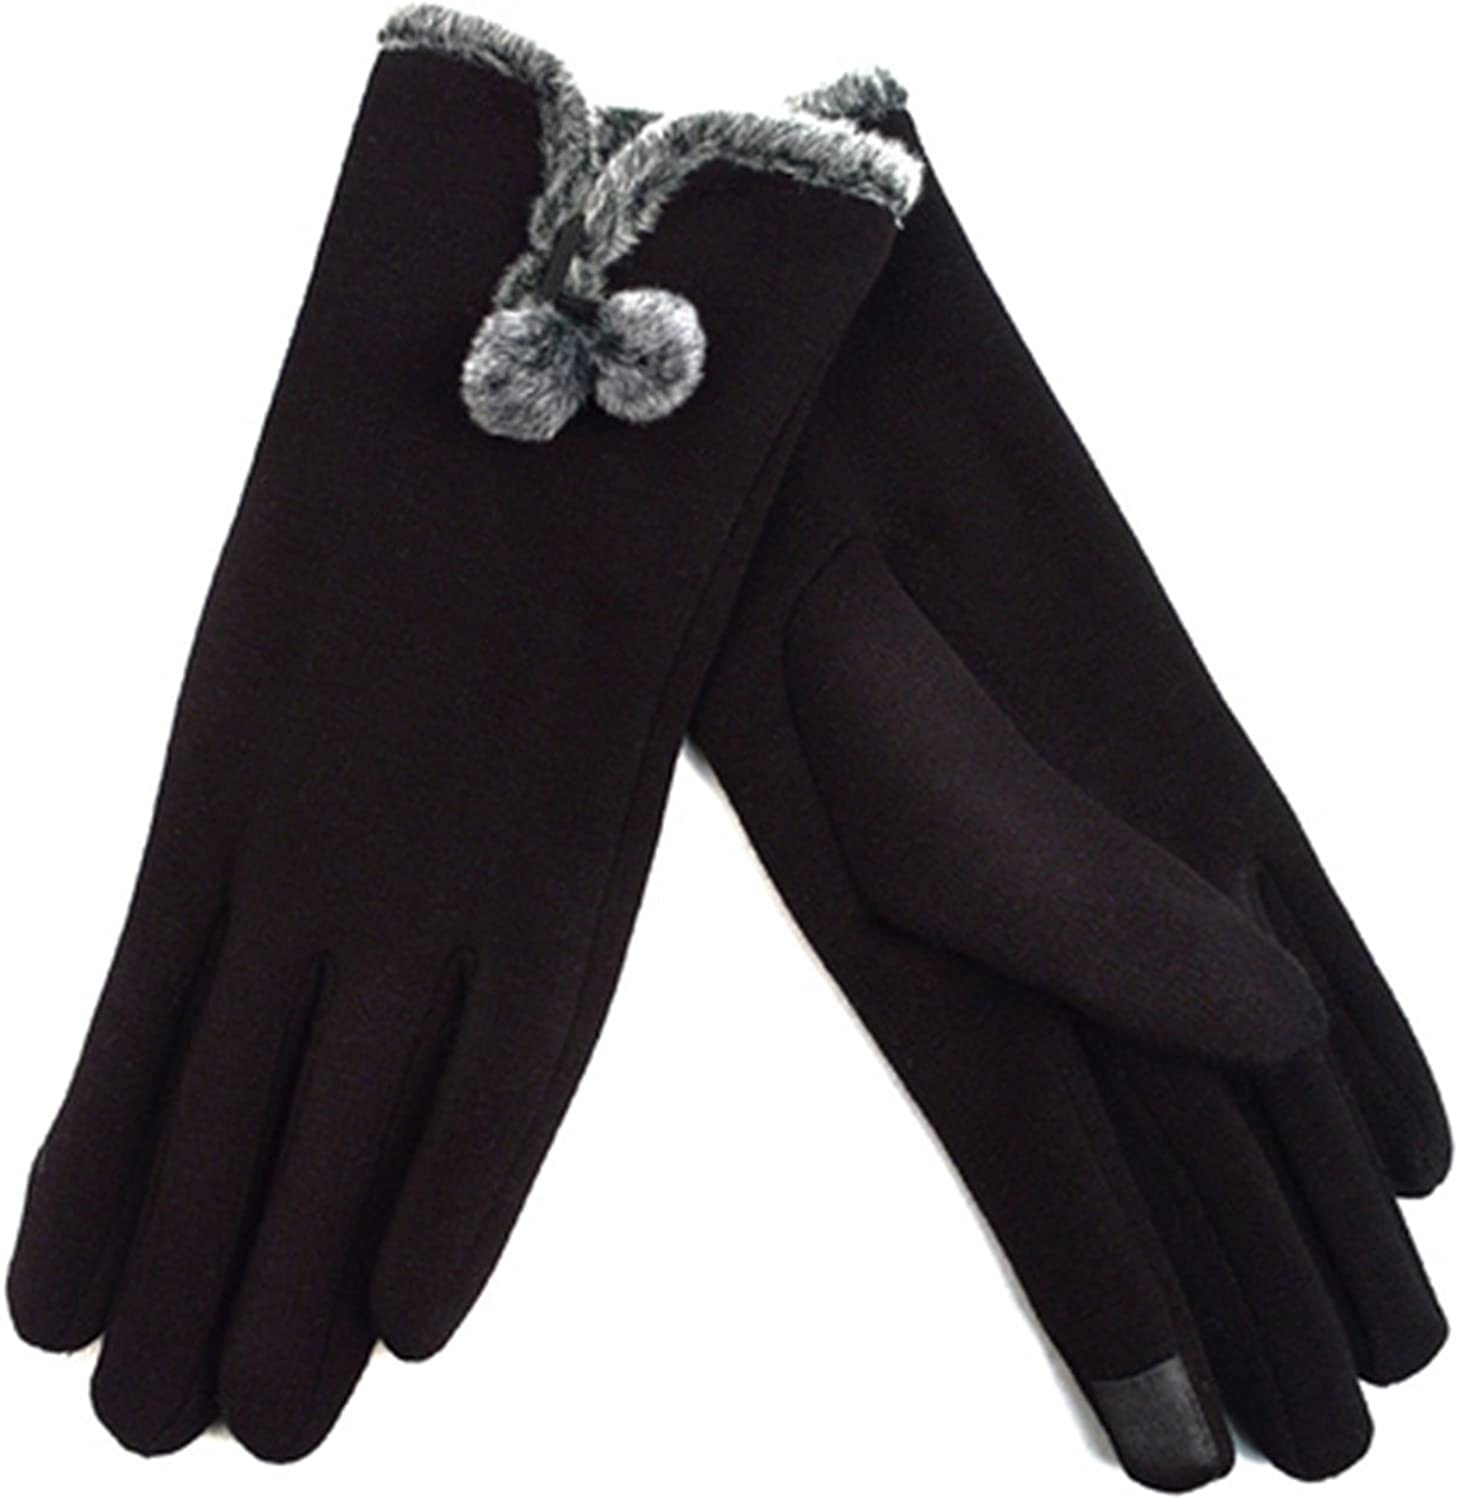 Women's Black Stylish Touch Screen Gloves with Fur Trim & Fleece Lining - S/M